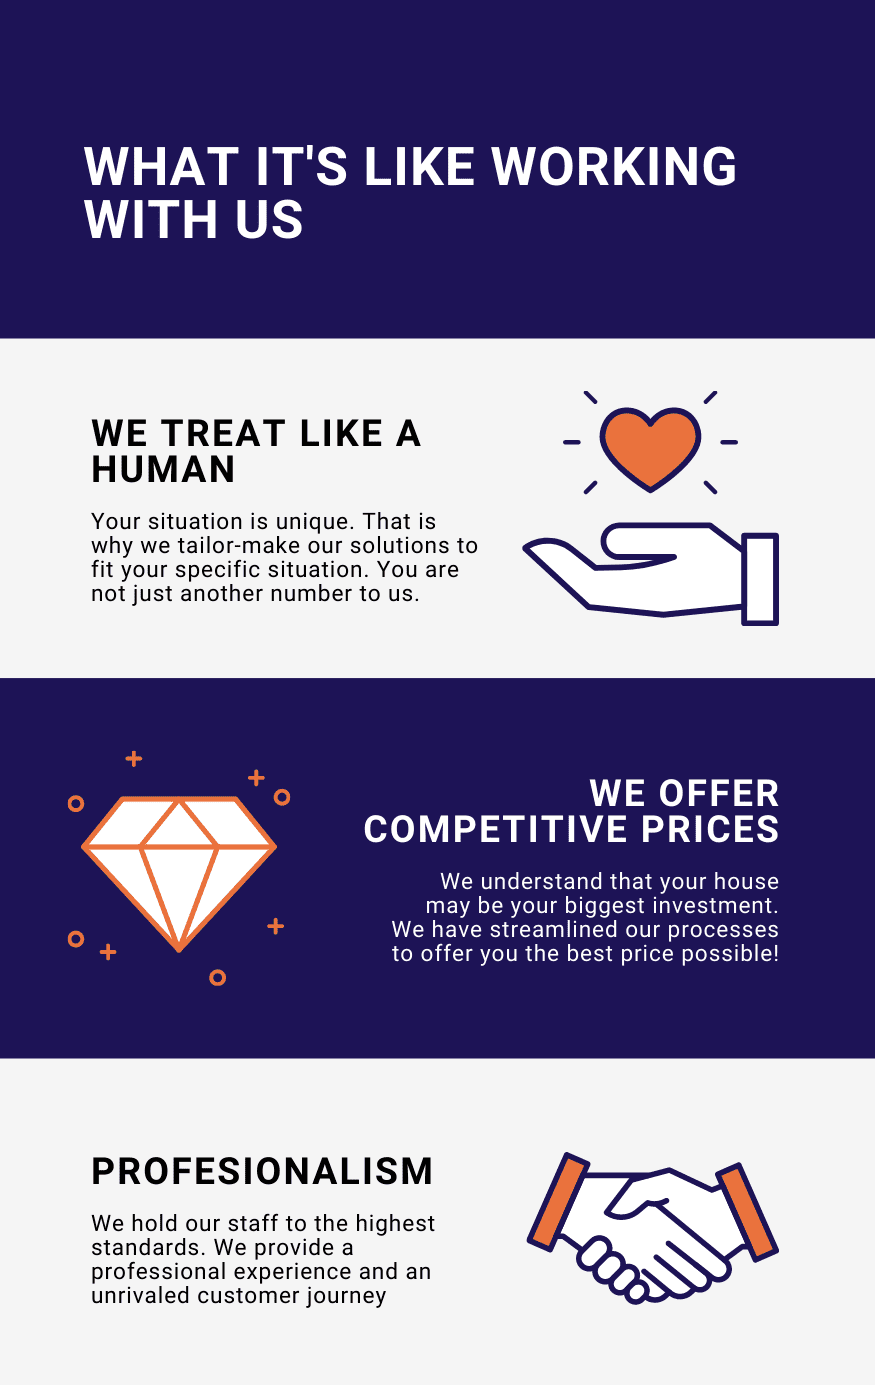 Infographic that explains how it is to sell your house fast to the trusted homebuyer. We treat you like a human we offer competitive prices and we offer a professional service